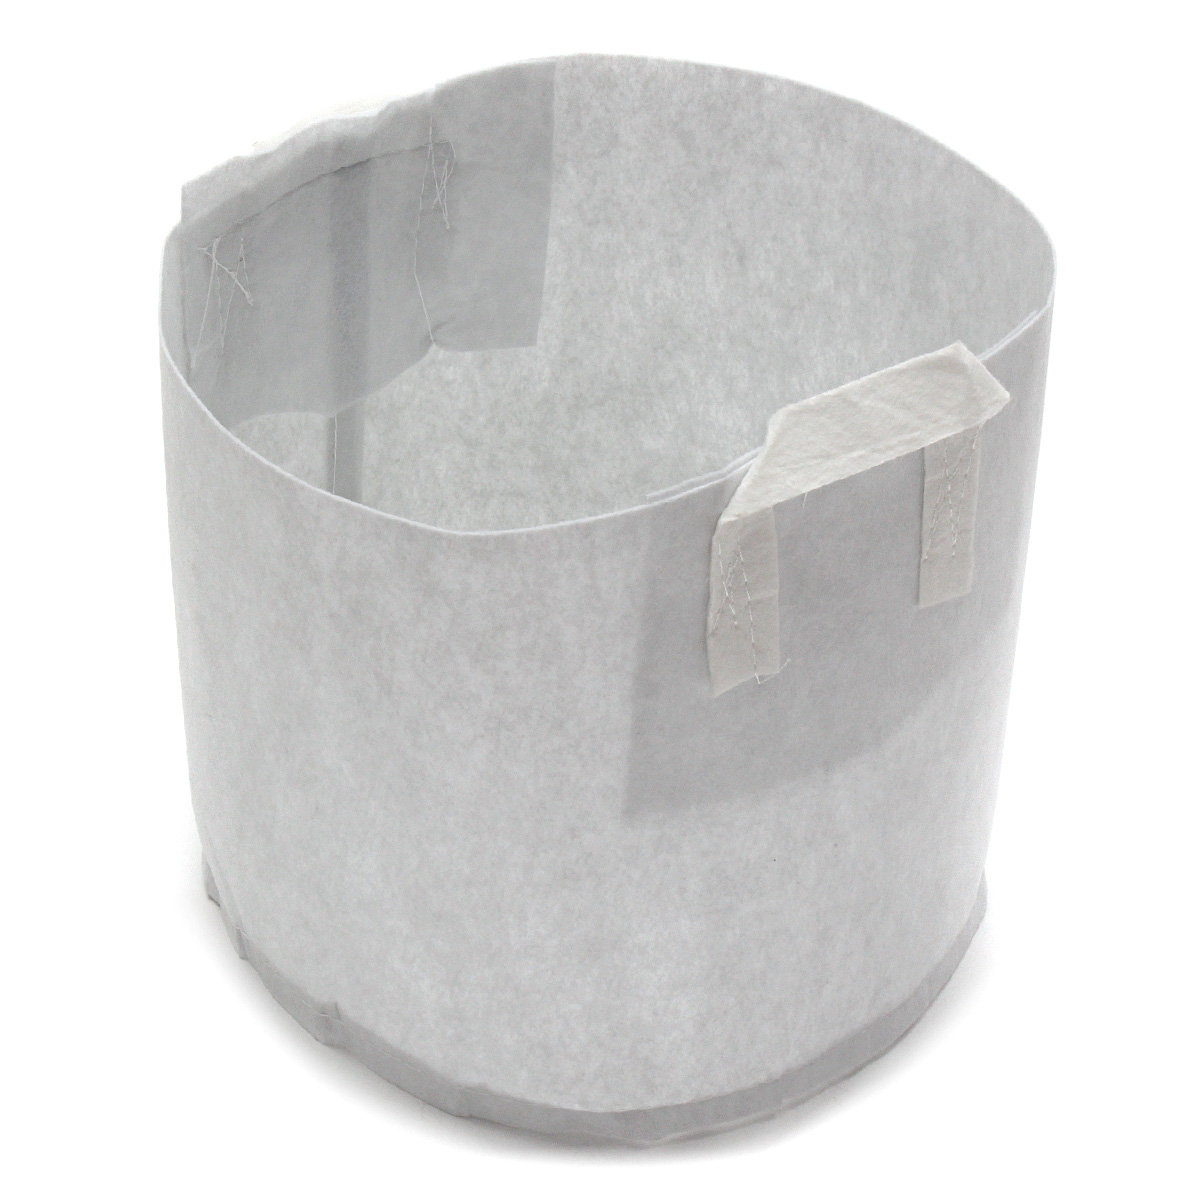 10Pcs Non-woven Round Fabric Pots Plant Pouch Root Container Grow Bag Aeration Container